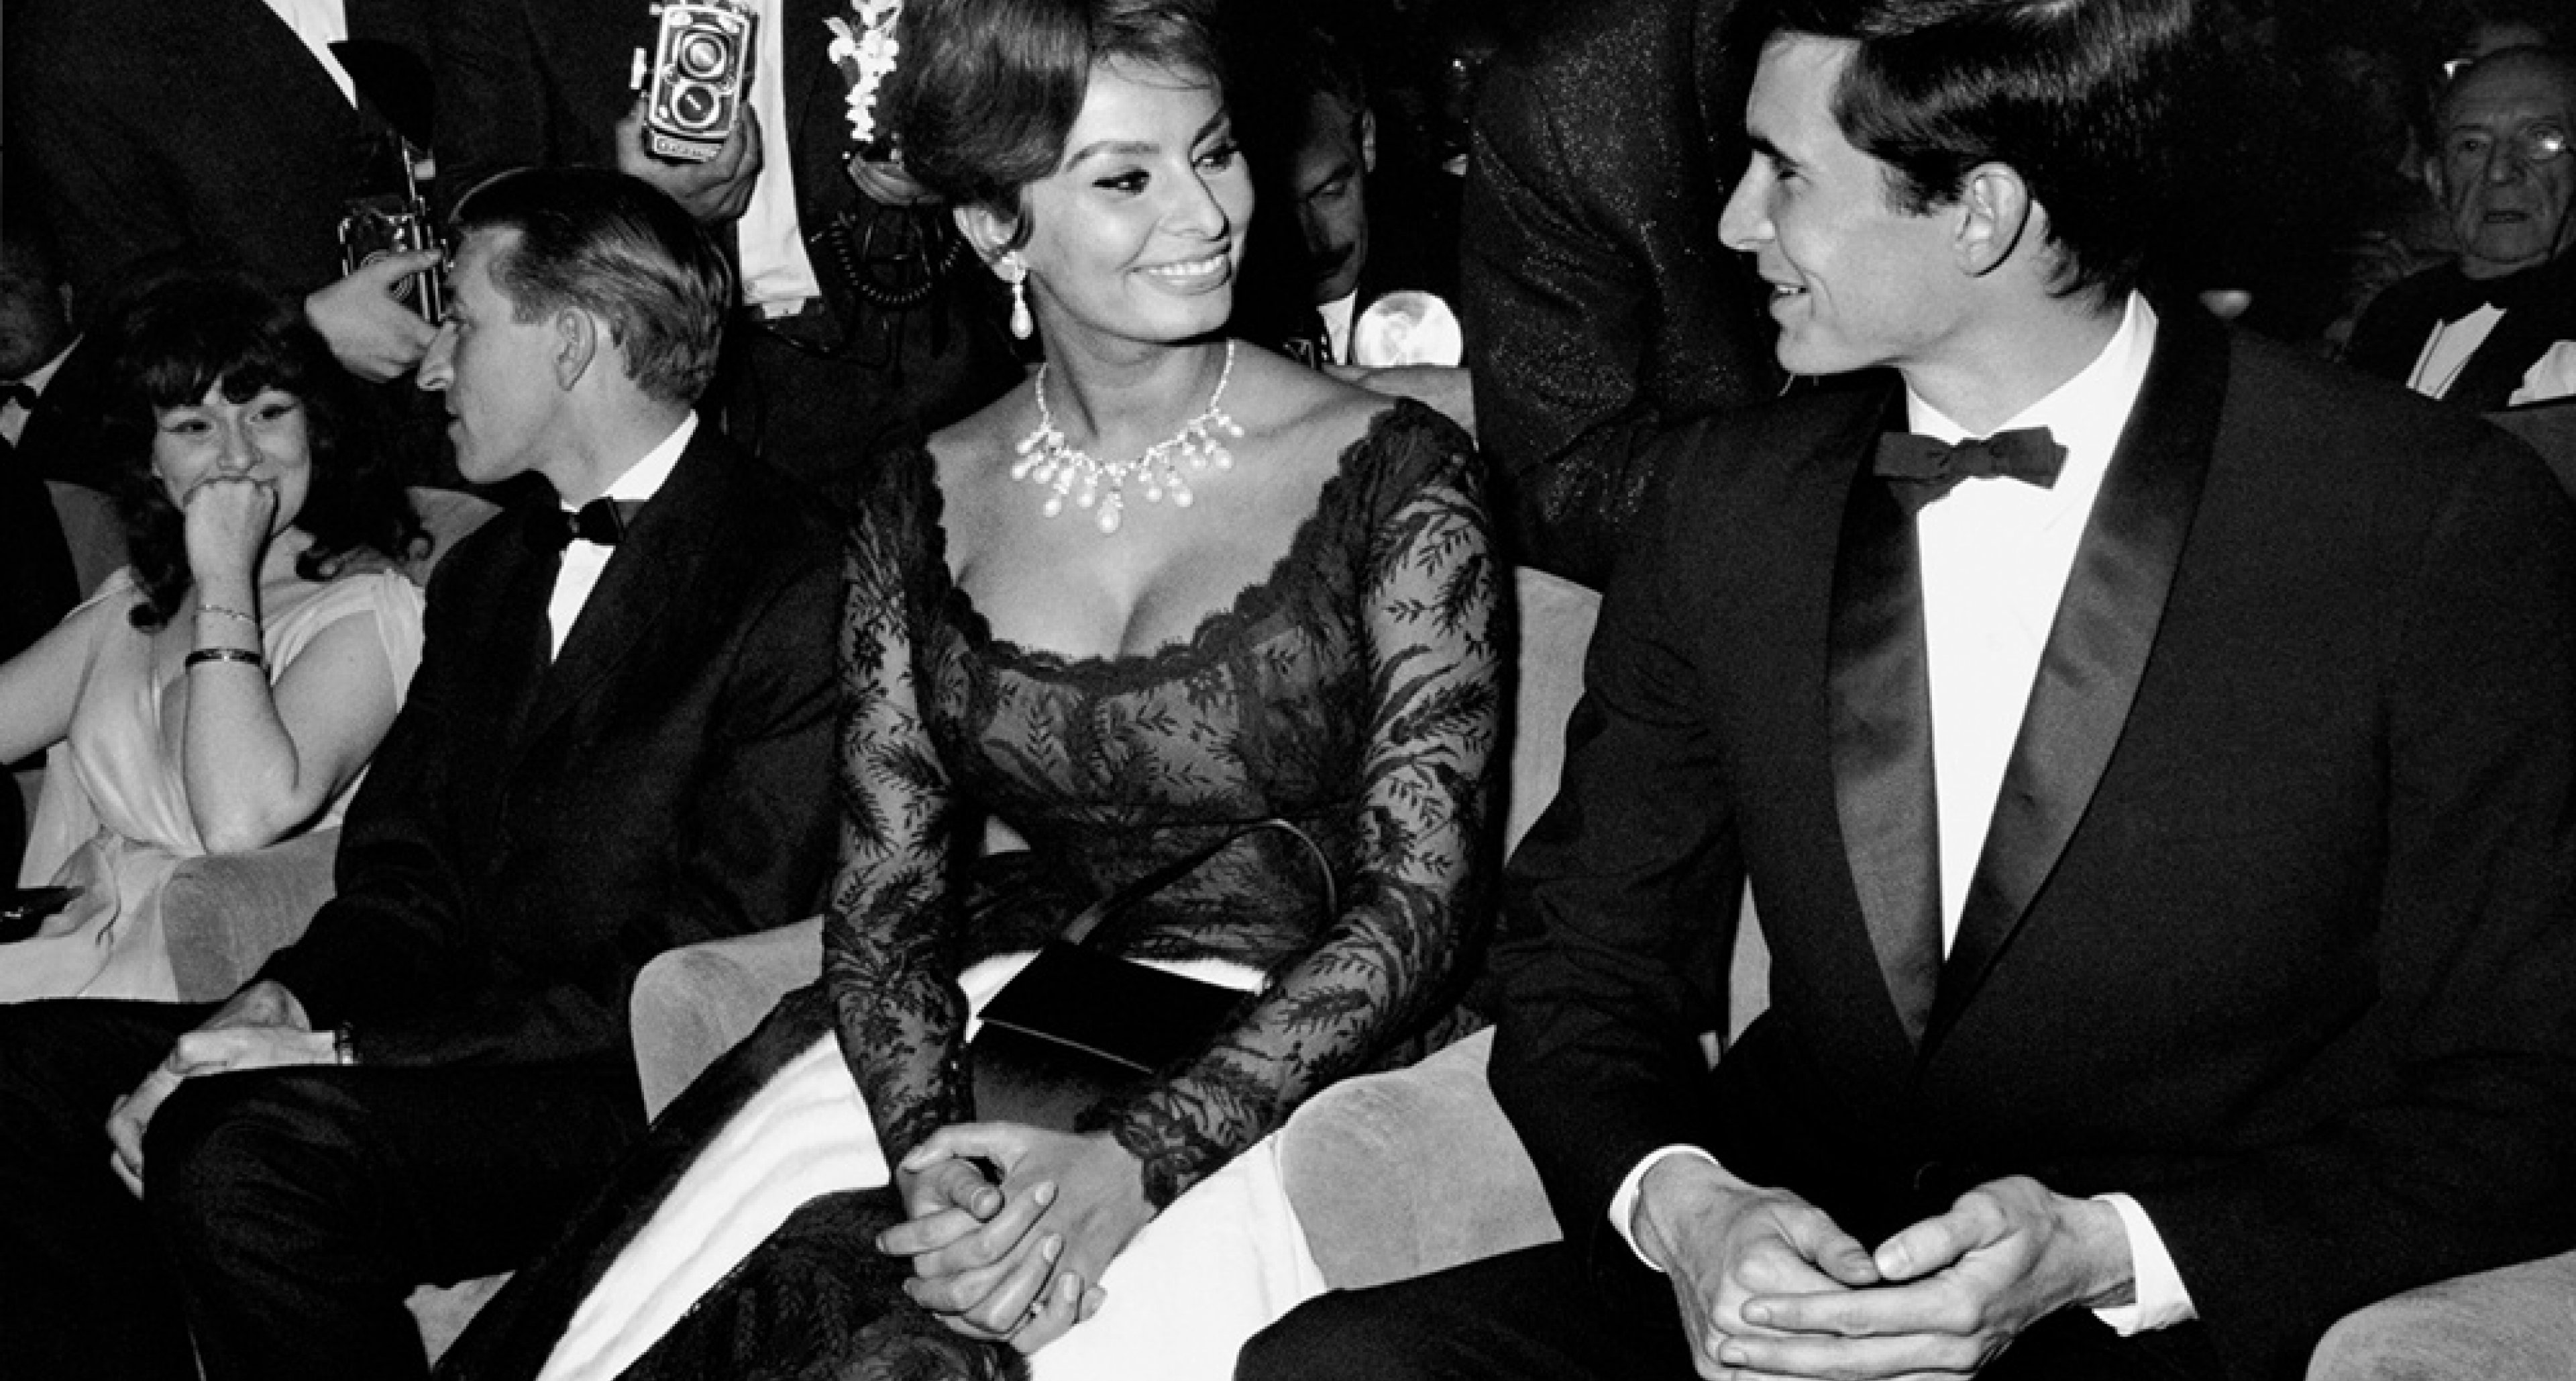 Sophia Loren and Anthony Perkins at a Gala Evening, Cannes Film Festival l96l Photo © edwardquinn.com